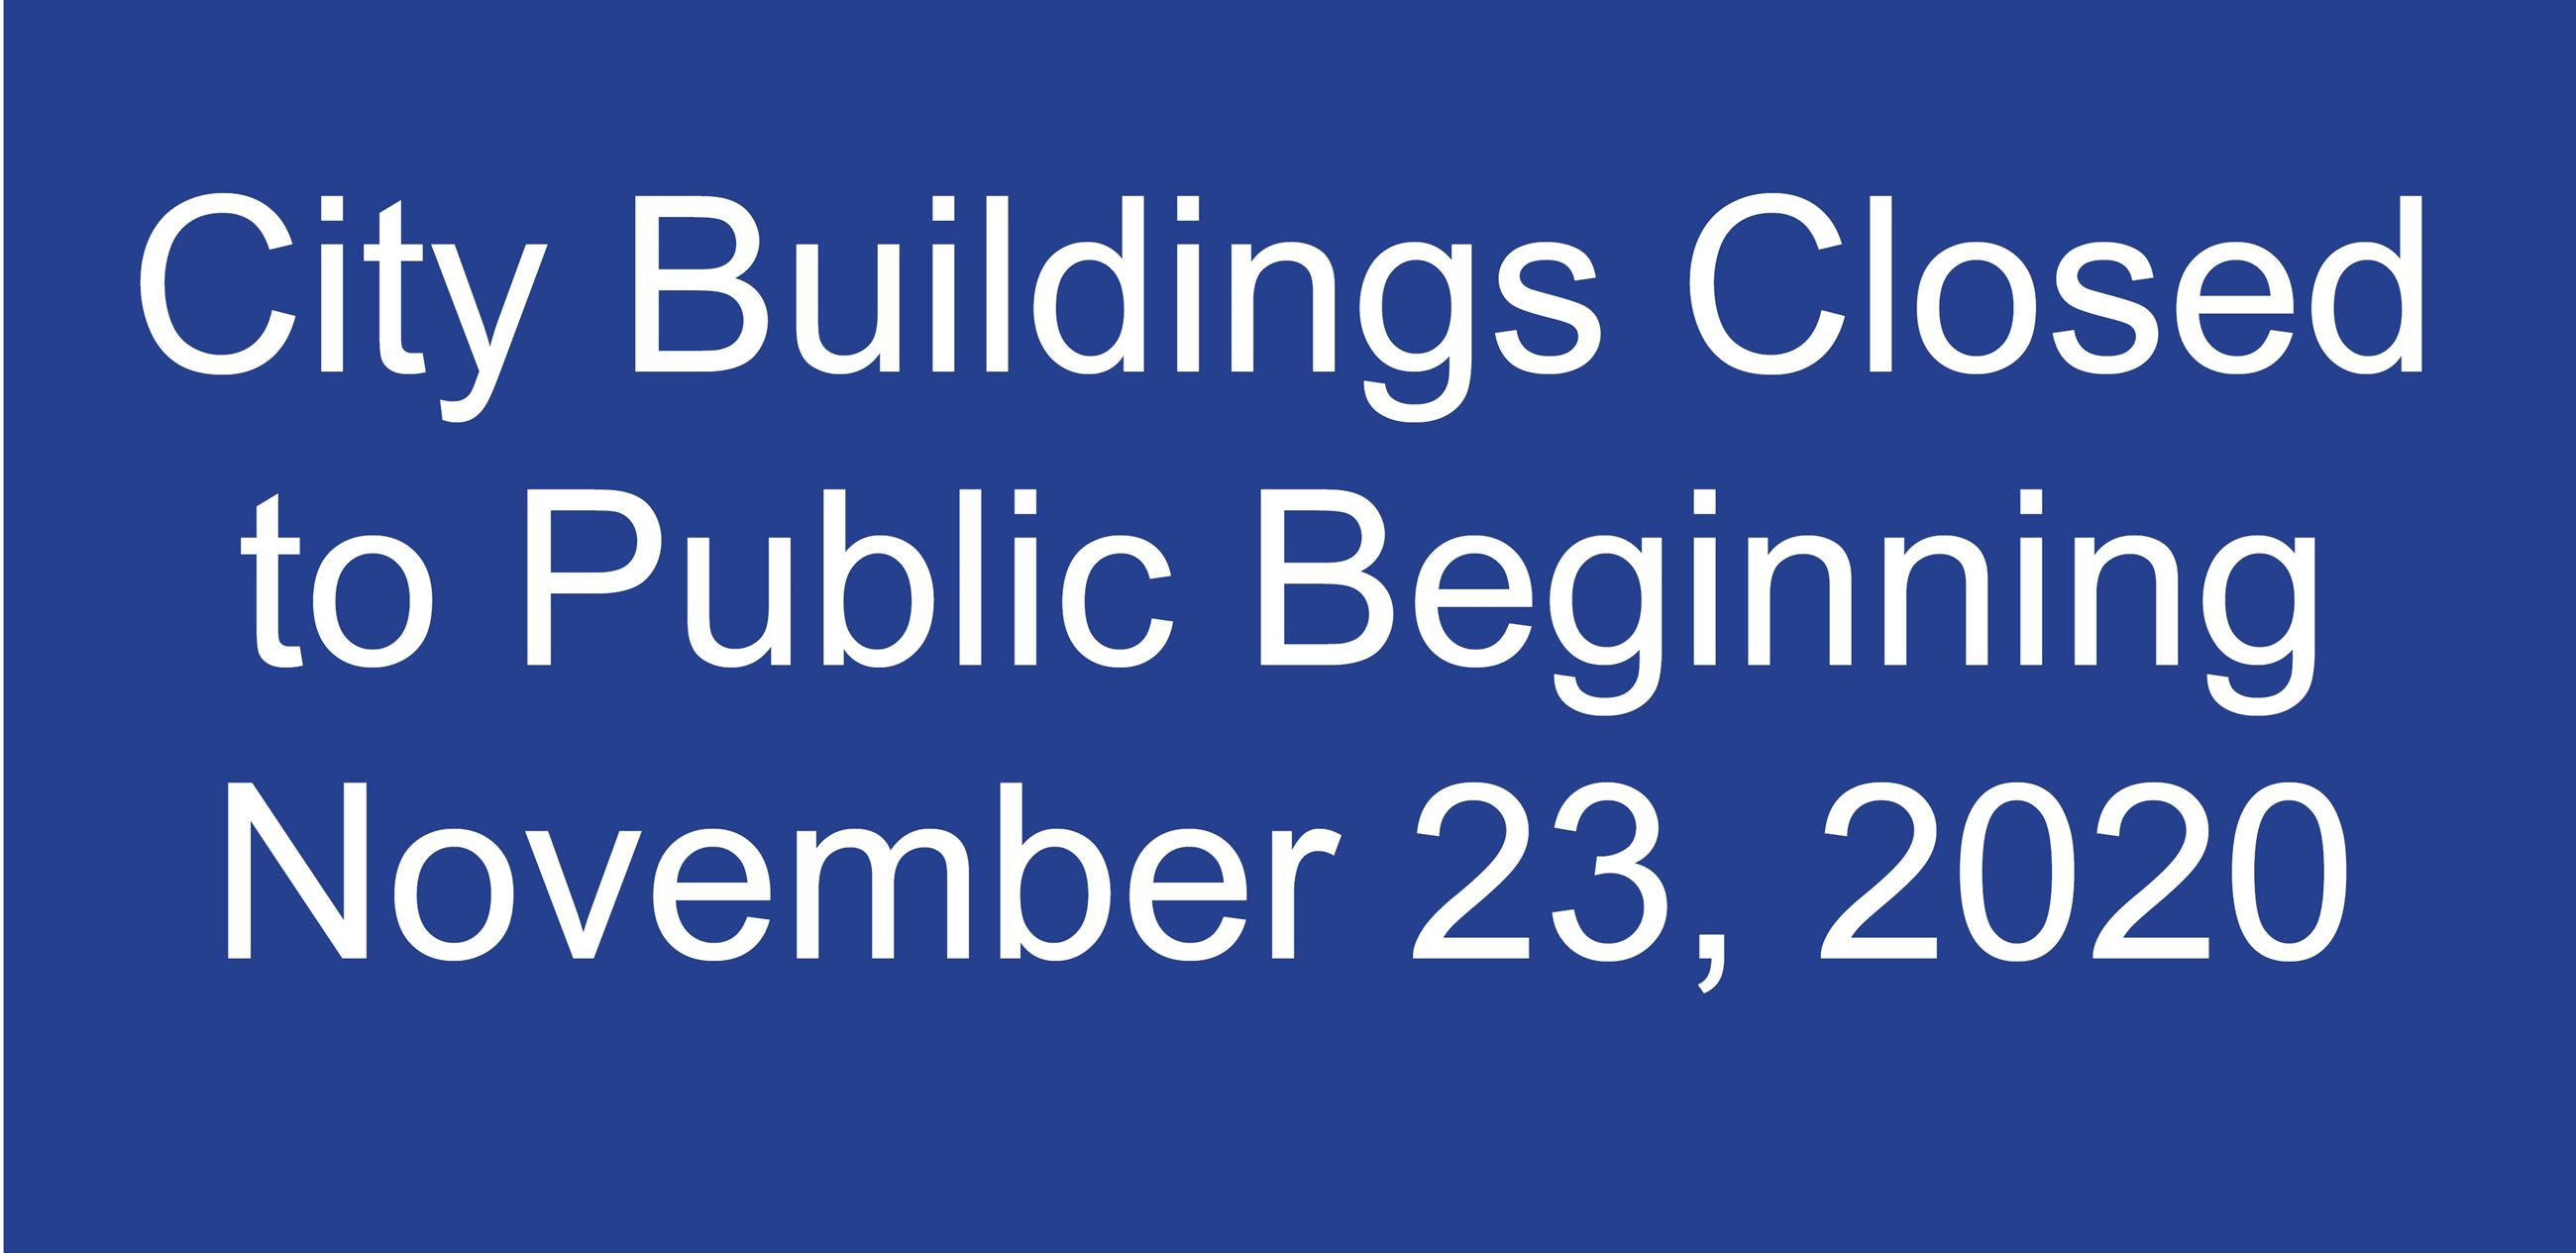 City buildings closed Nov 23